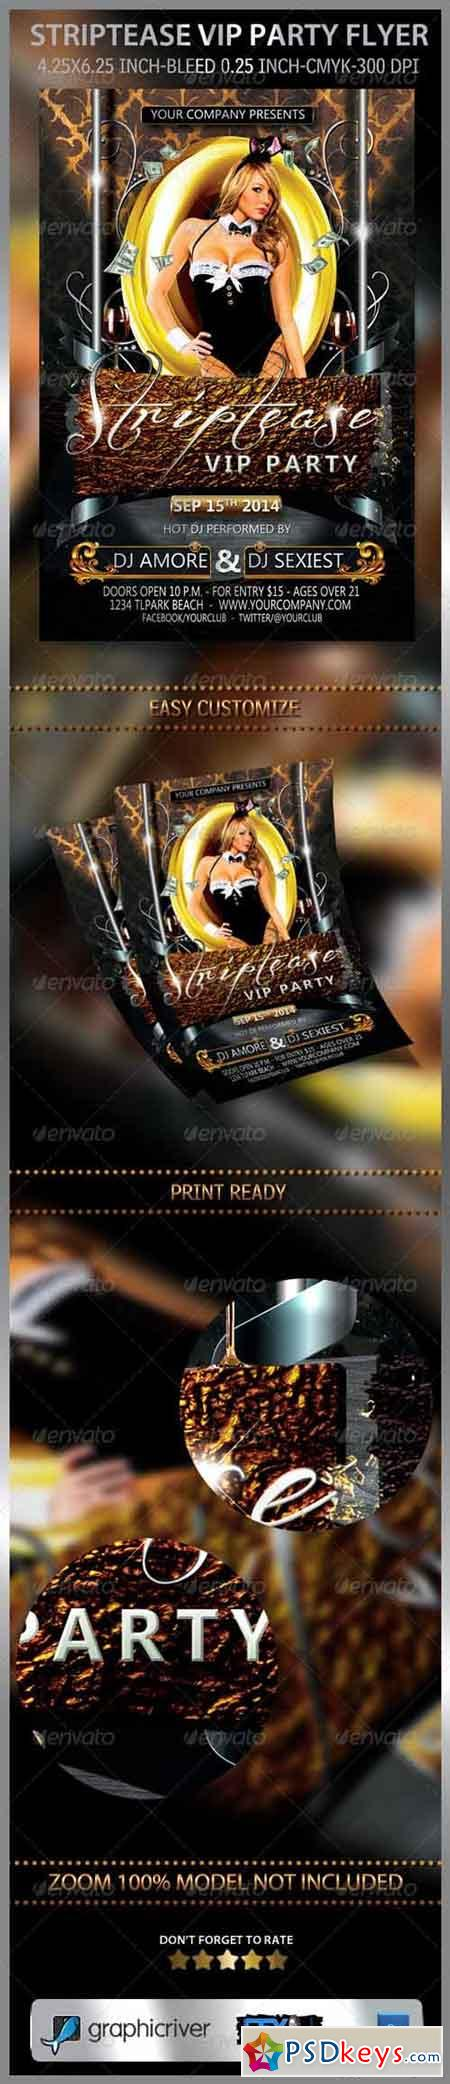 Striptease VIP Party Flyer 7301408